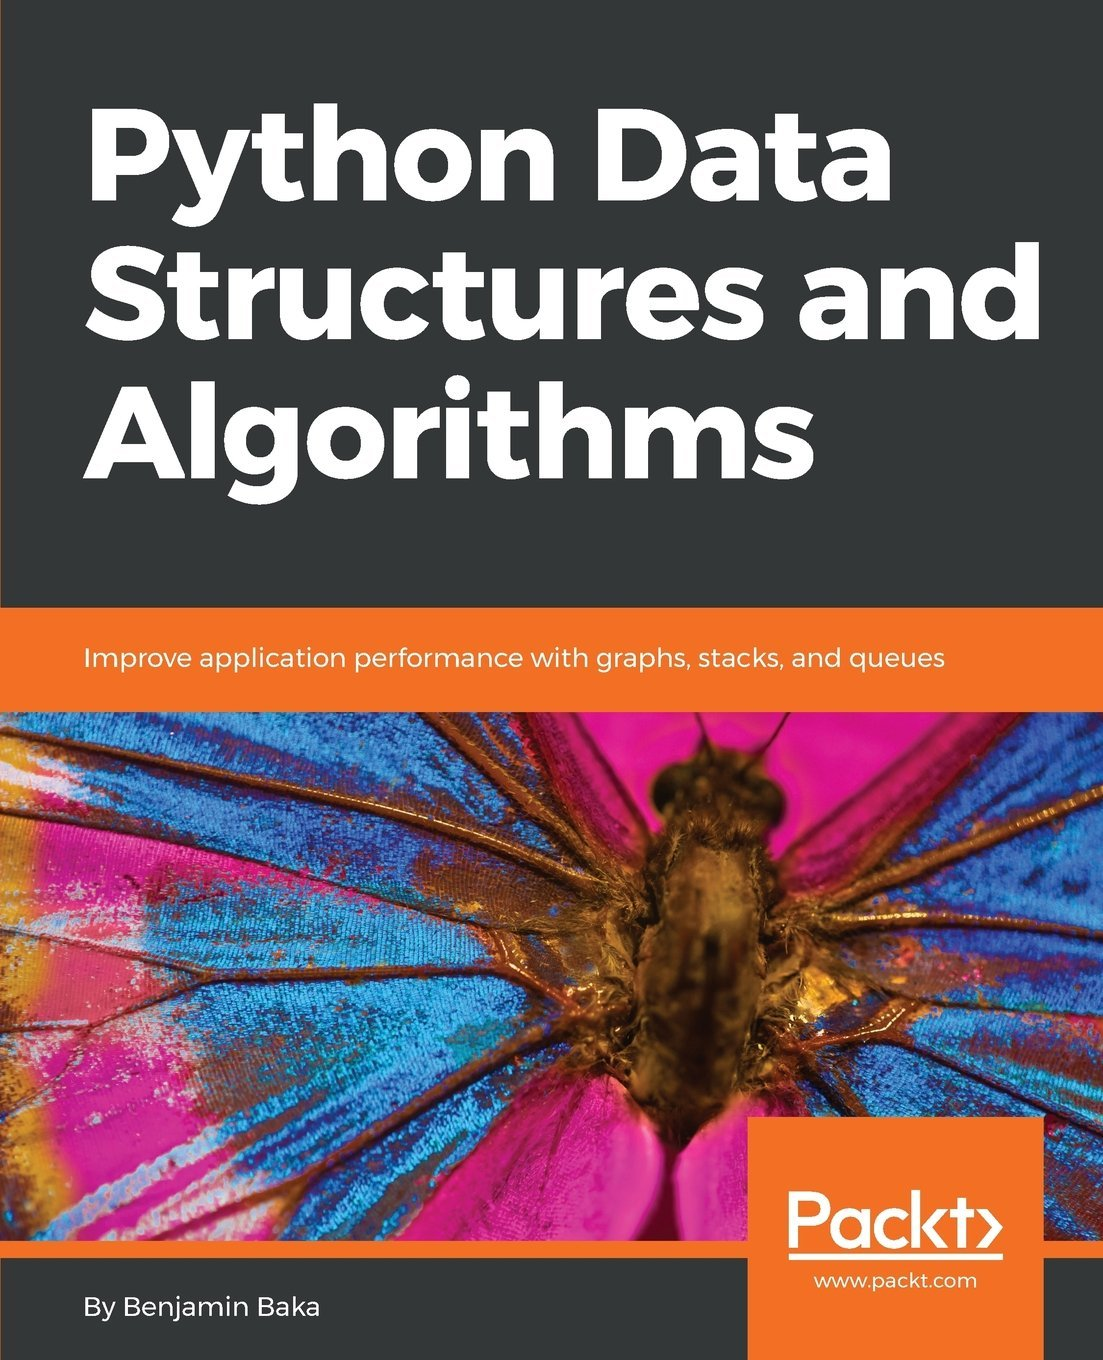 Python Data Structures and Algorithms: Improve application